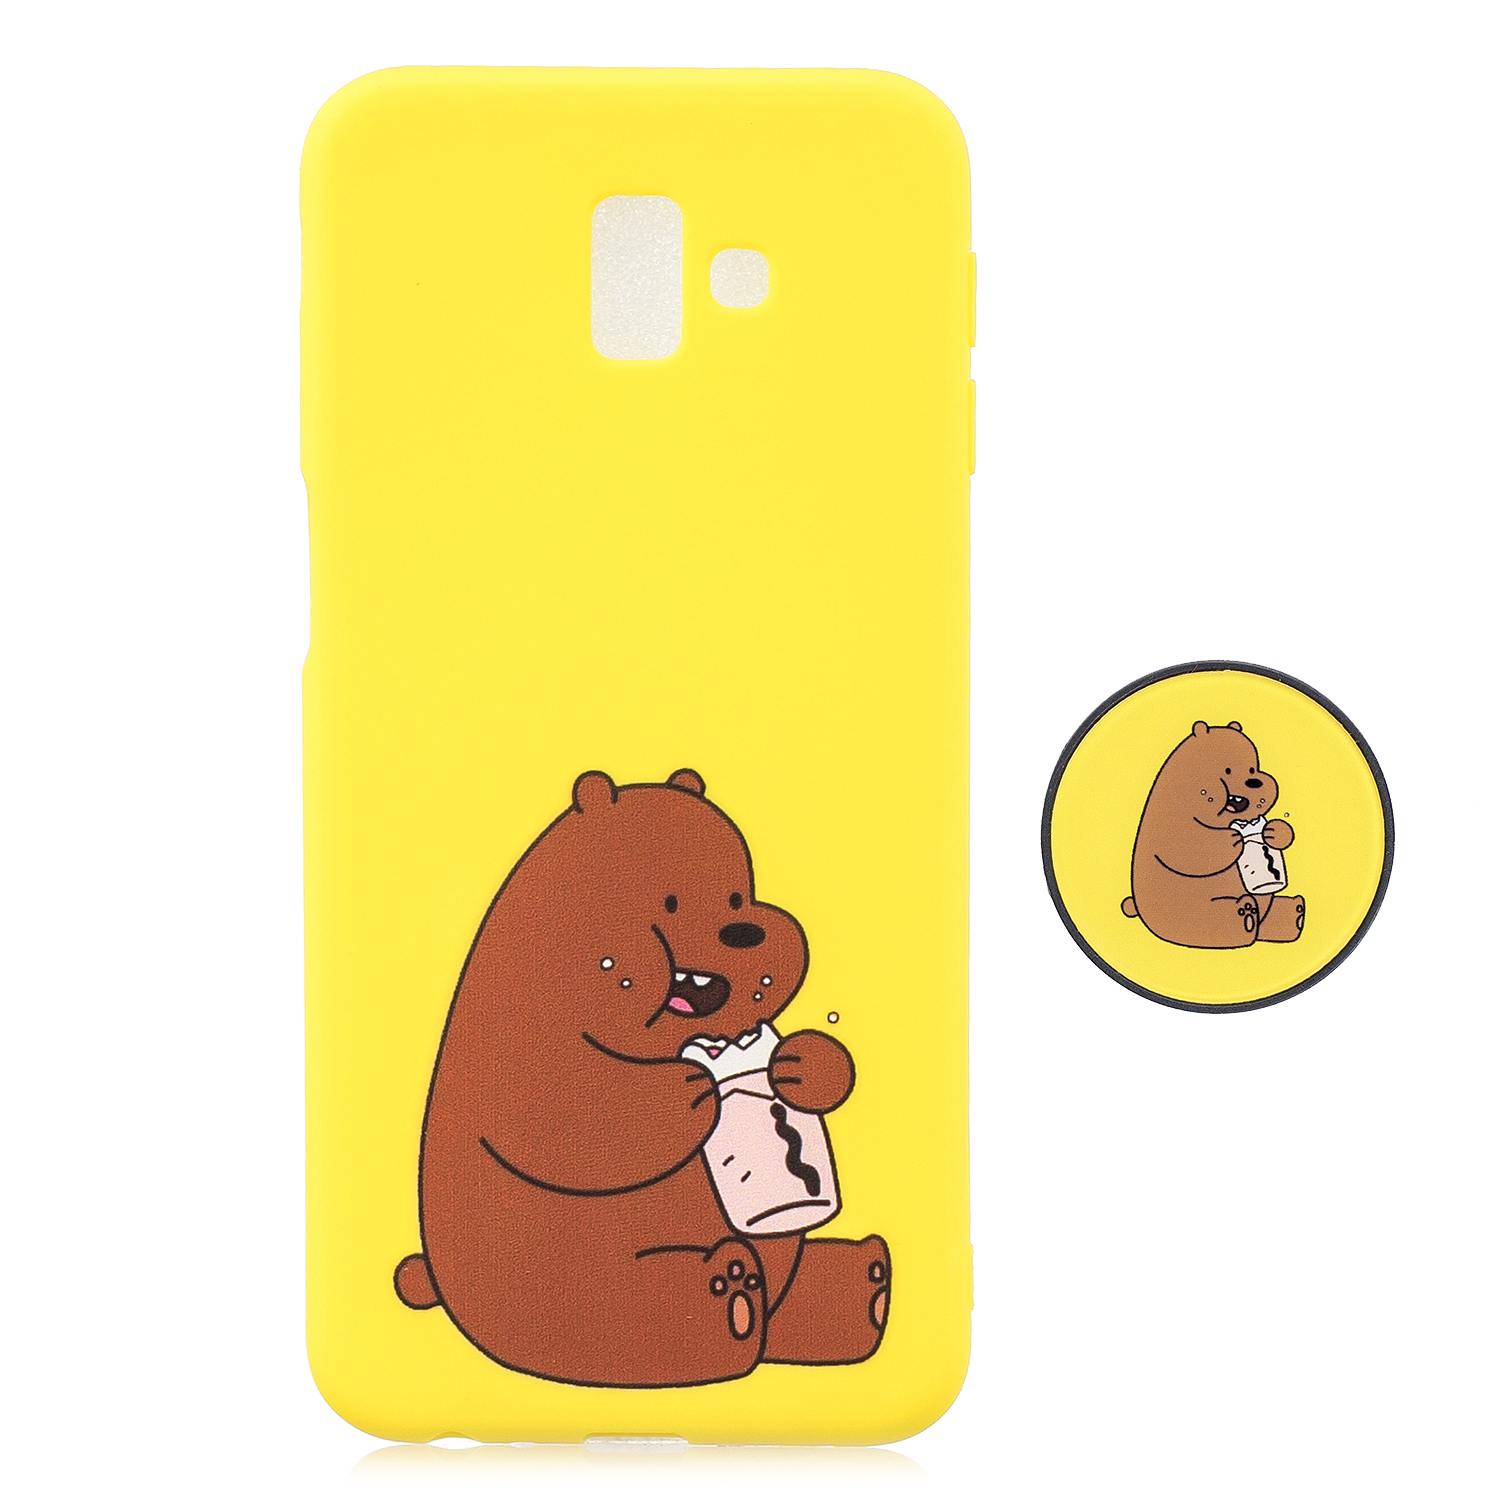 For Samsung J6 PLUS Non-Slip TPU Bumper Case Shockproof Full-Body Protective Case Cover with Adjustable Bracket 8